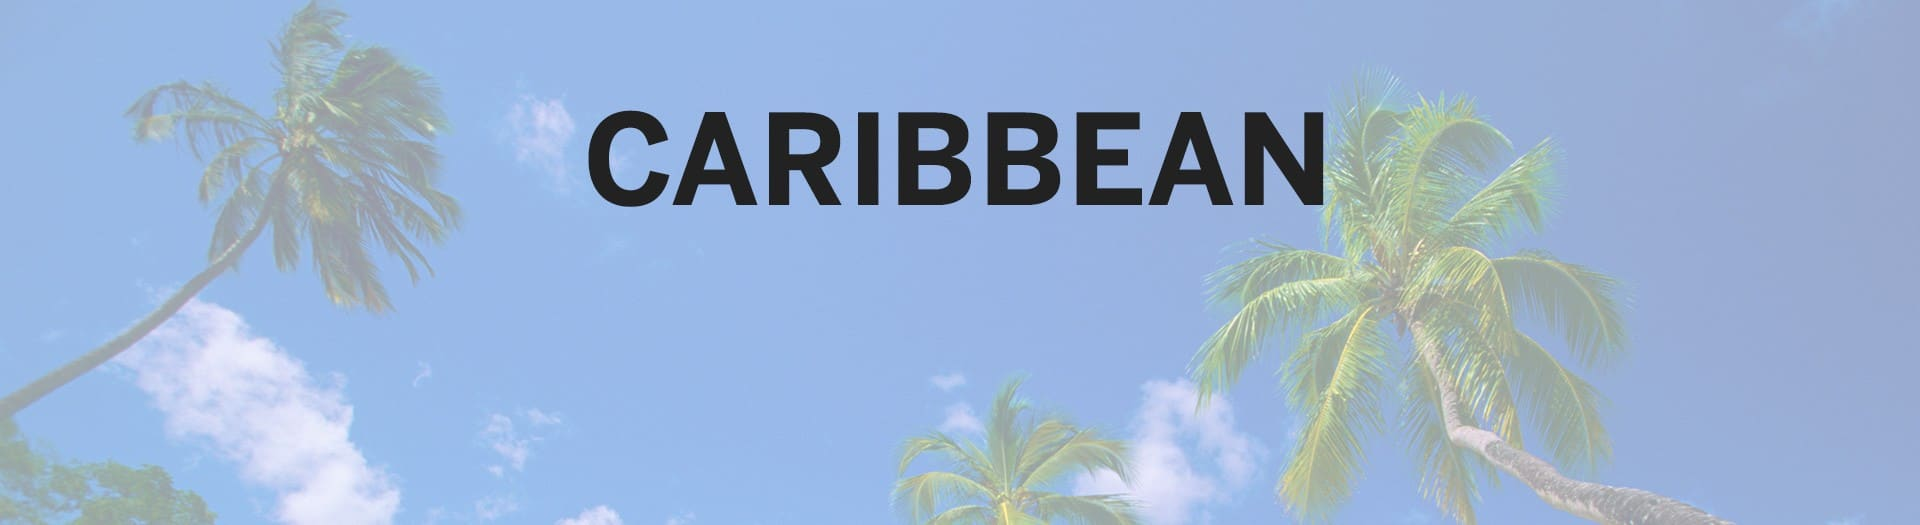 Ultra-Luxury Caribbean Cruises Seabourn's intimate ships carry you to the unspoiled, uncommon Caribbean.